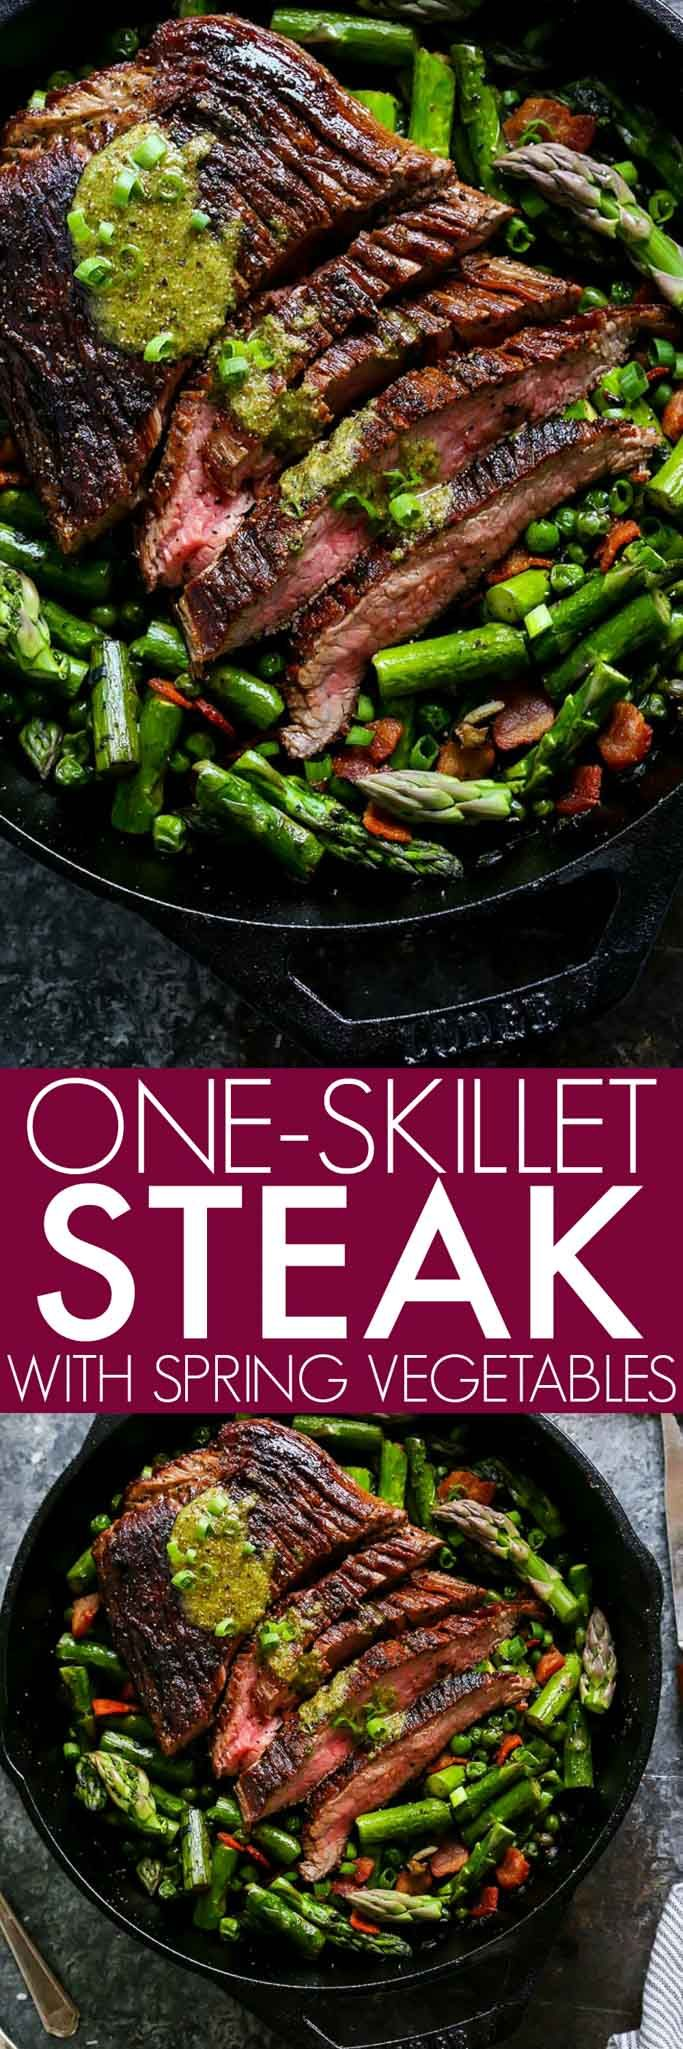 This One-Skillet Steak and Spring Vegetables with Mint Mustard Sauce is an elegant dinner that's easy enough for weekday entertaining. Steak, peas and asparagus cook up together in just one pan! AD platingsandpairings.com